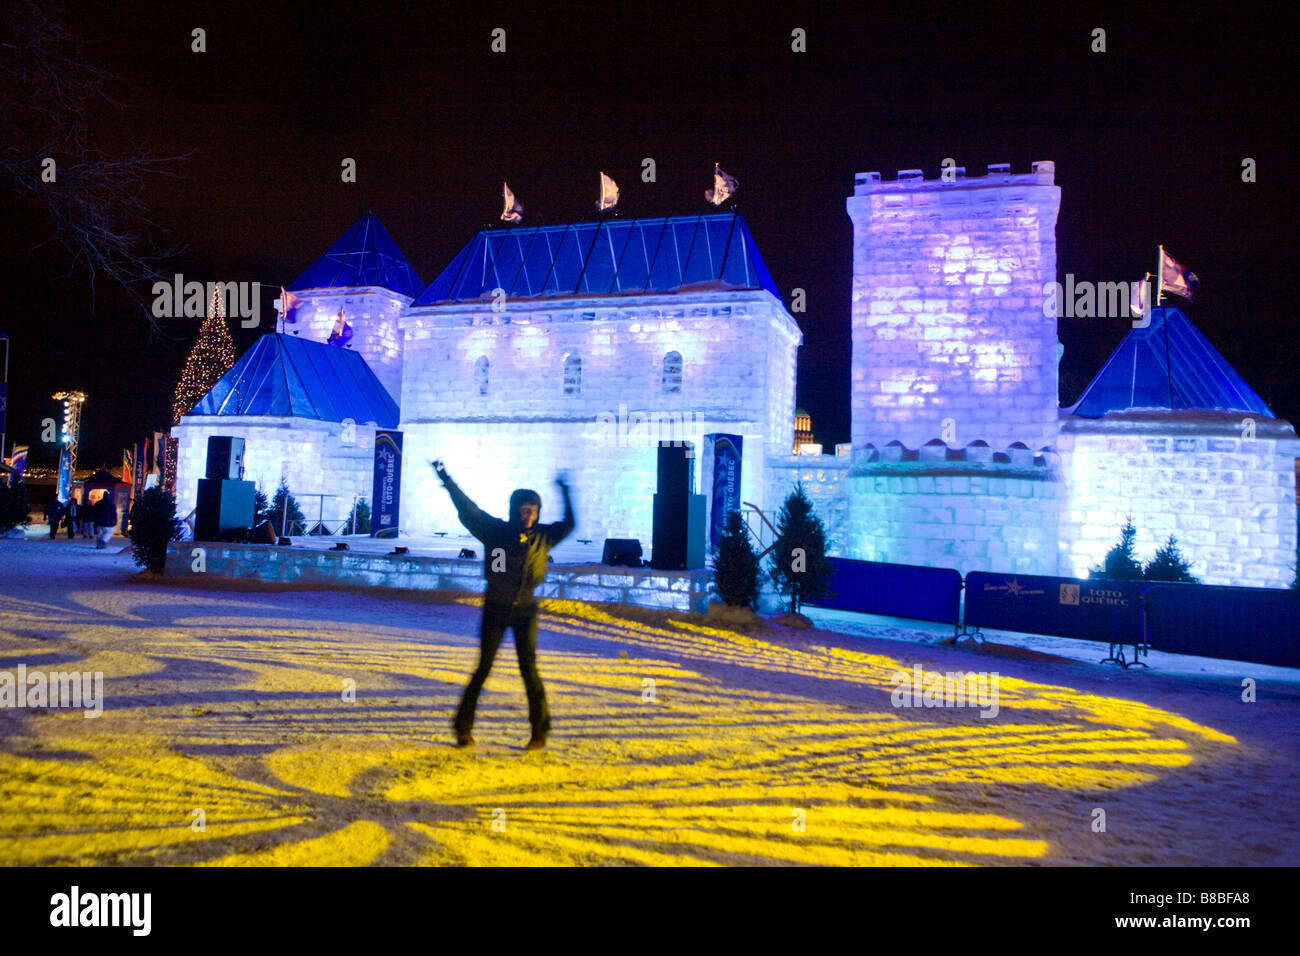 People dancing at ice palace Winter Carnival Old Quebec city - Stock Image